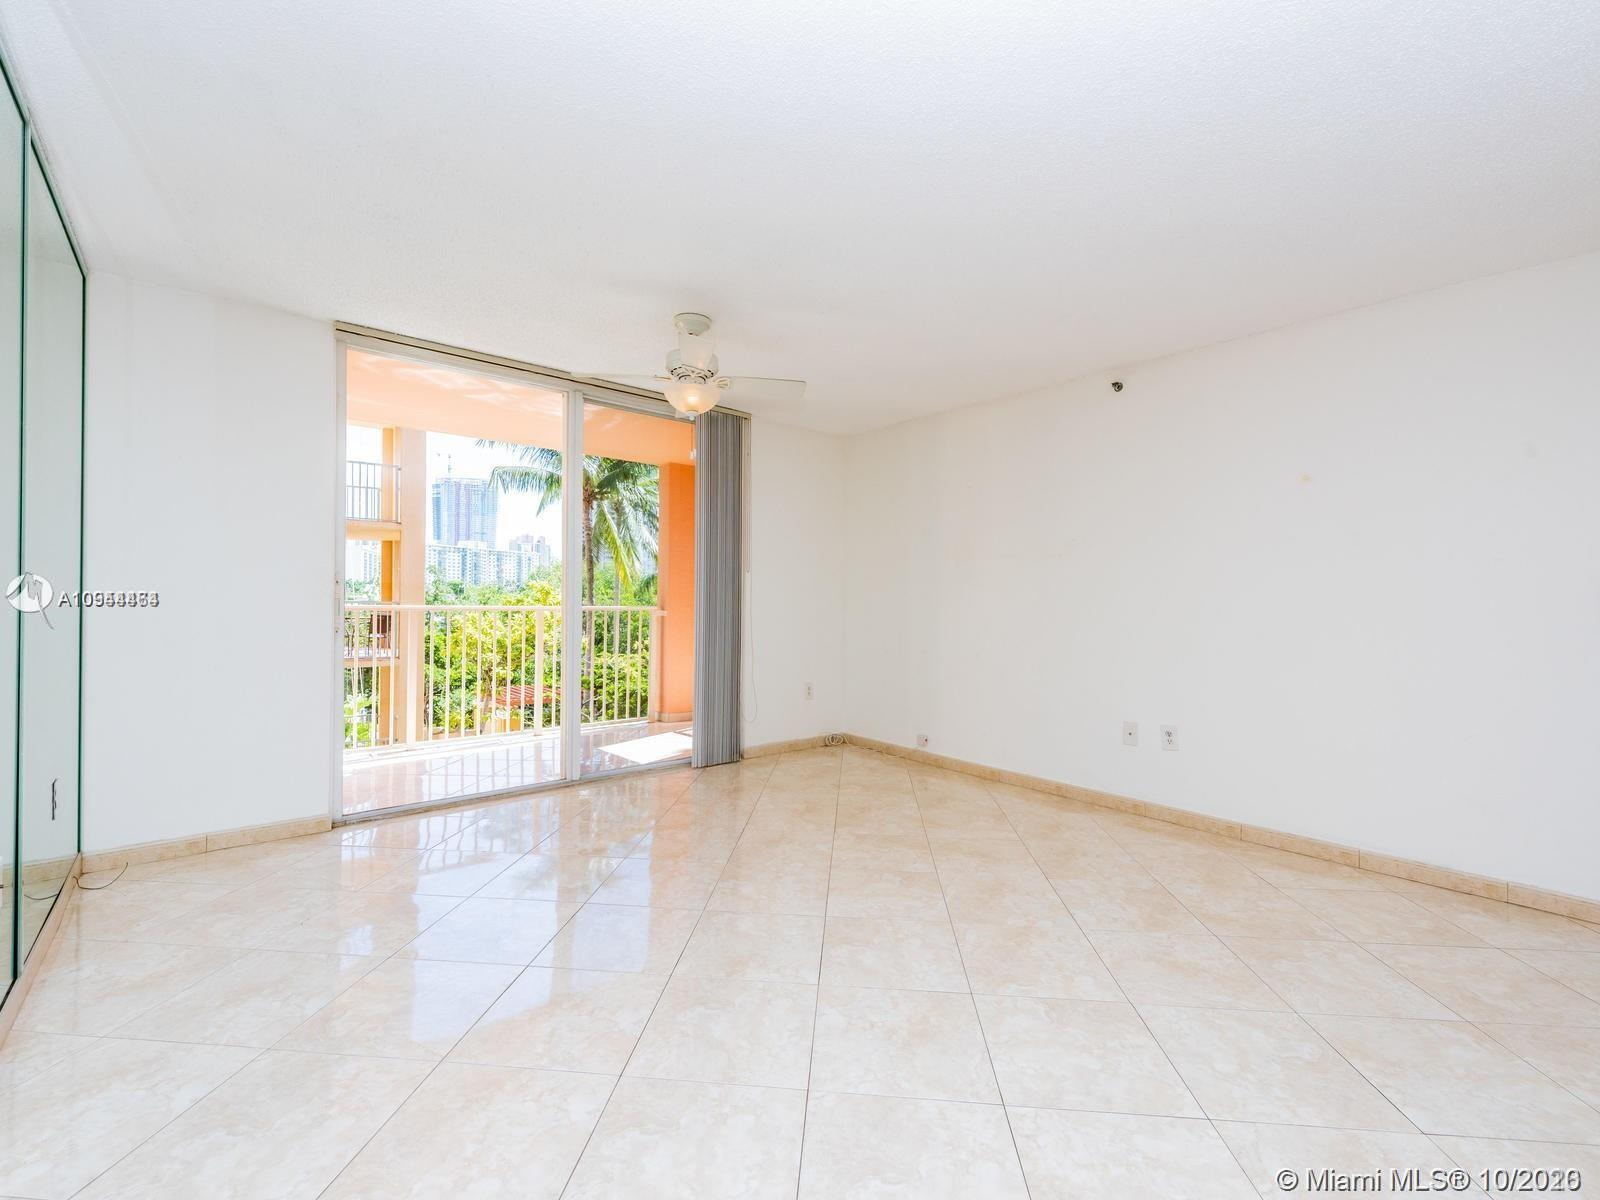 This Magnificent One bedroom residence features spacious master suite, tile floors, open eat-in kitc